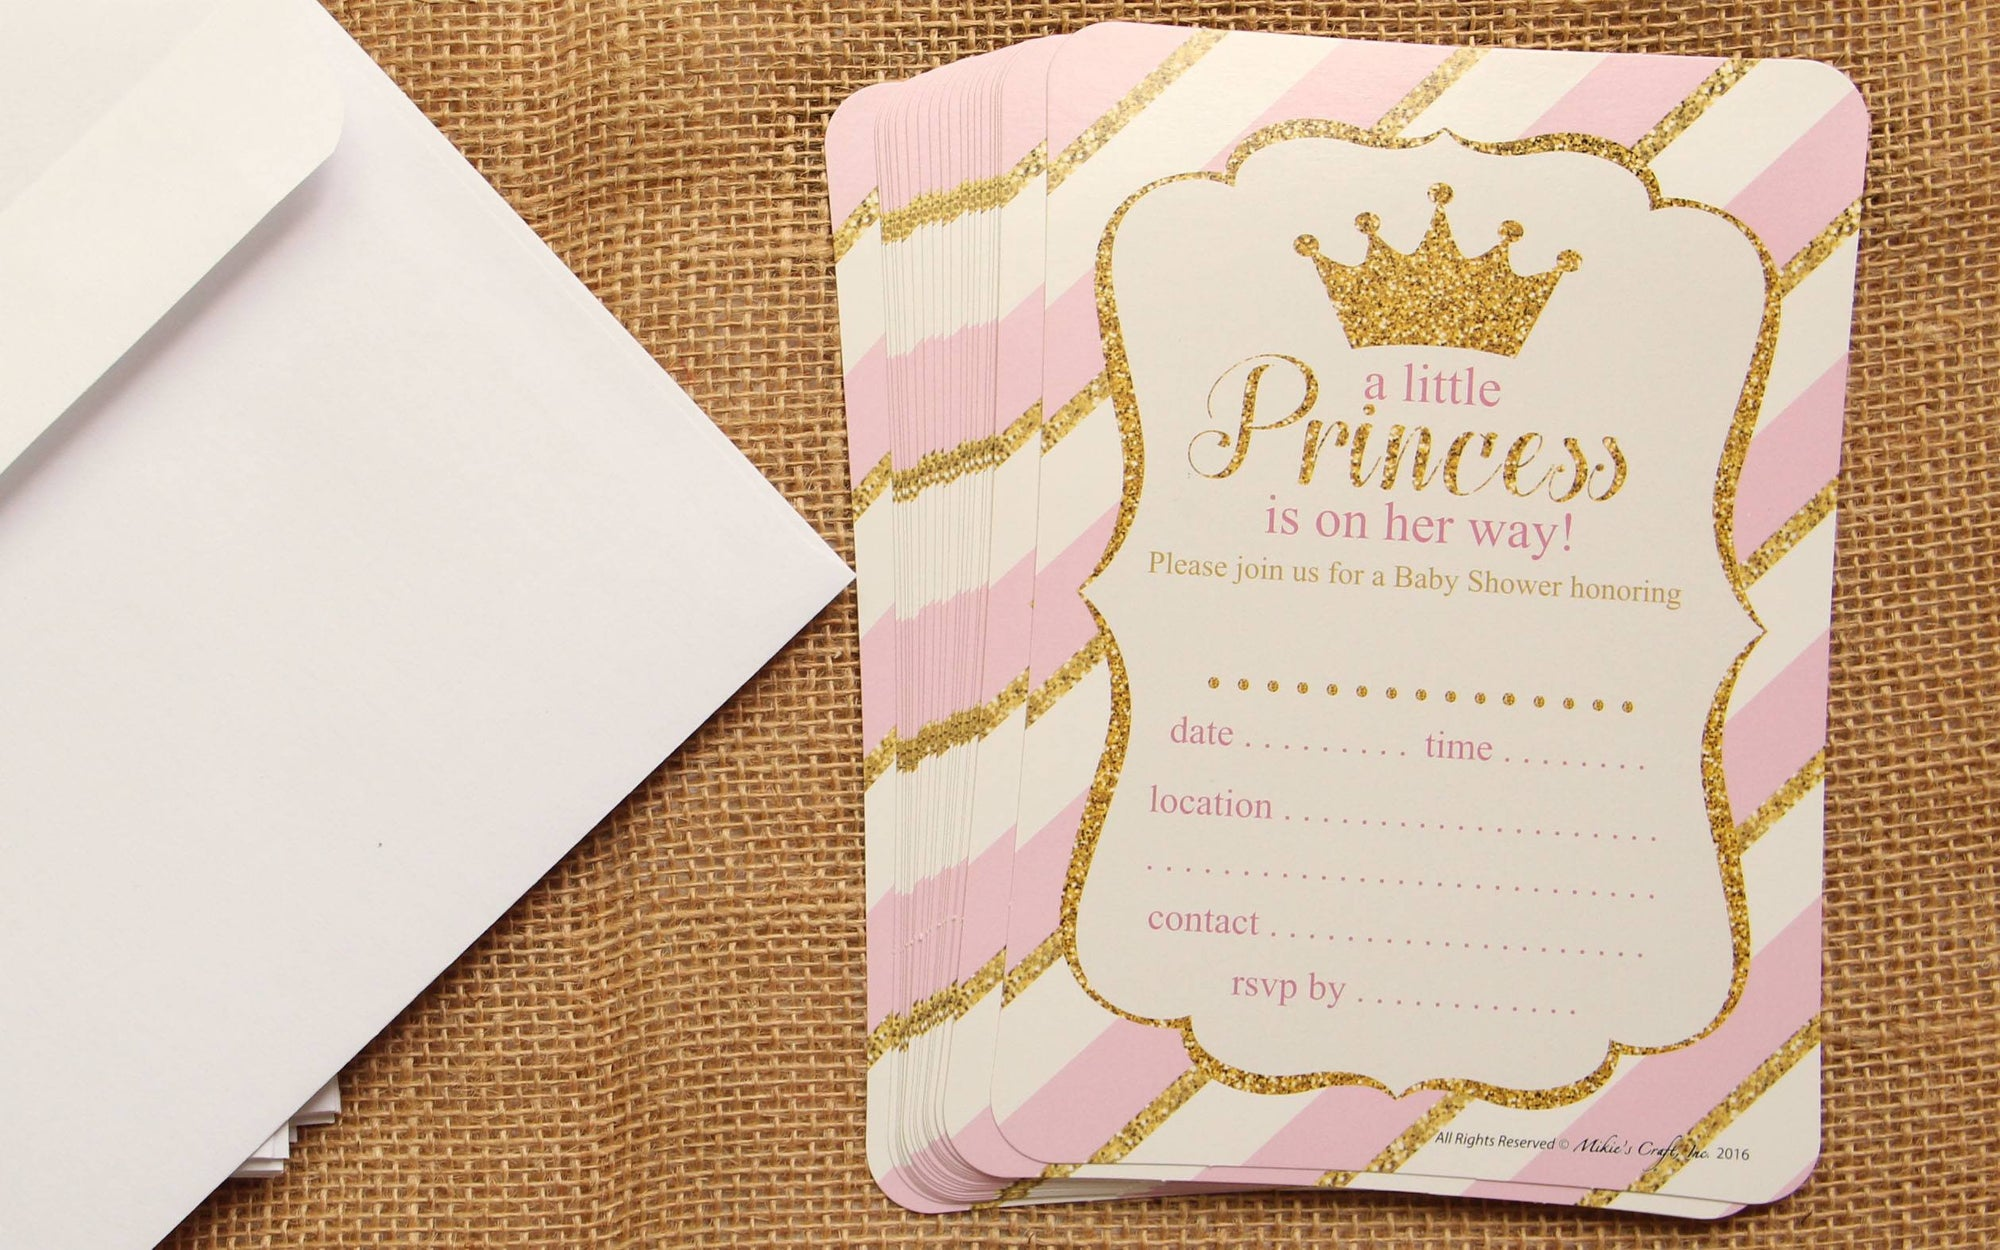 Princess Baby Shower Invitation with Envelop (Little Princess) (12 pieces) - Americasfavors